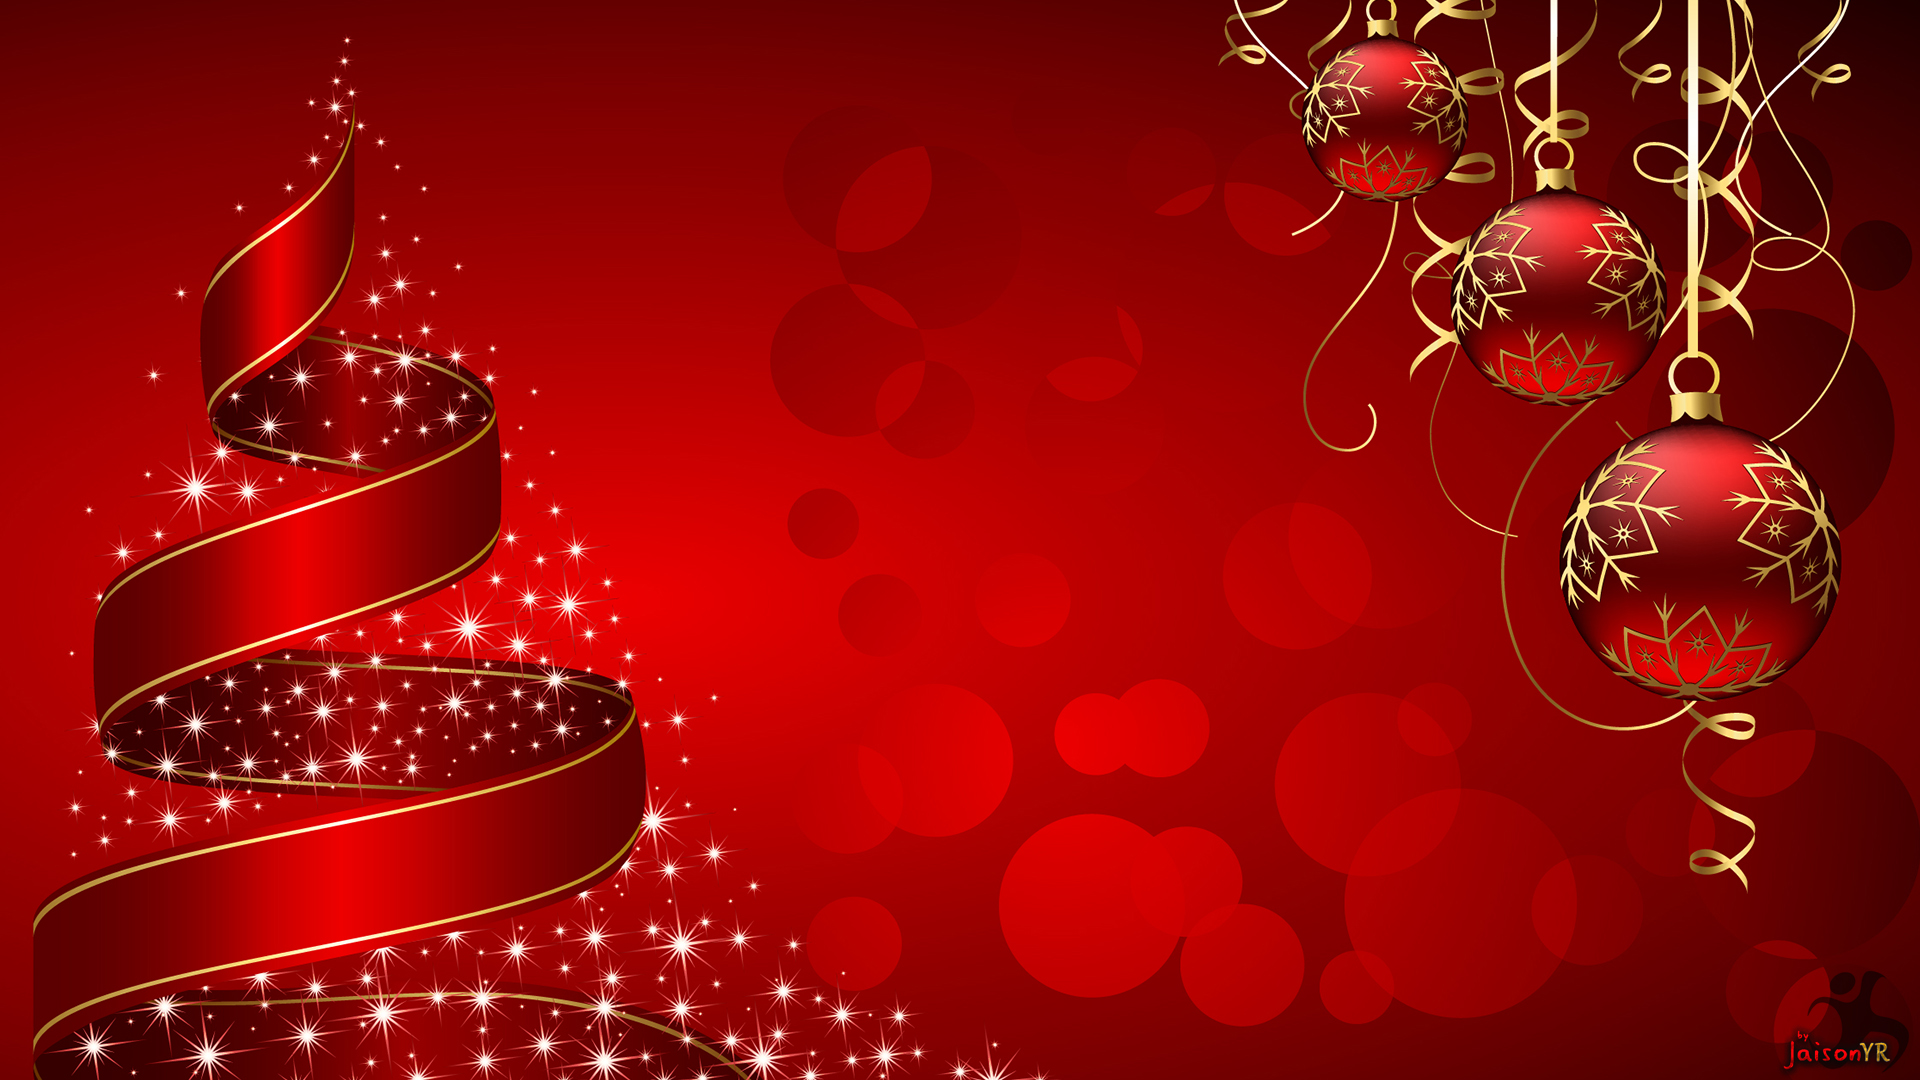 Merry Christmas Exclusive HD Wallpapers 6037 1920x1080